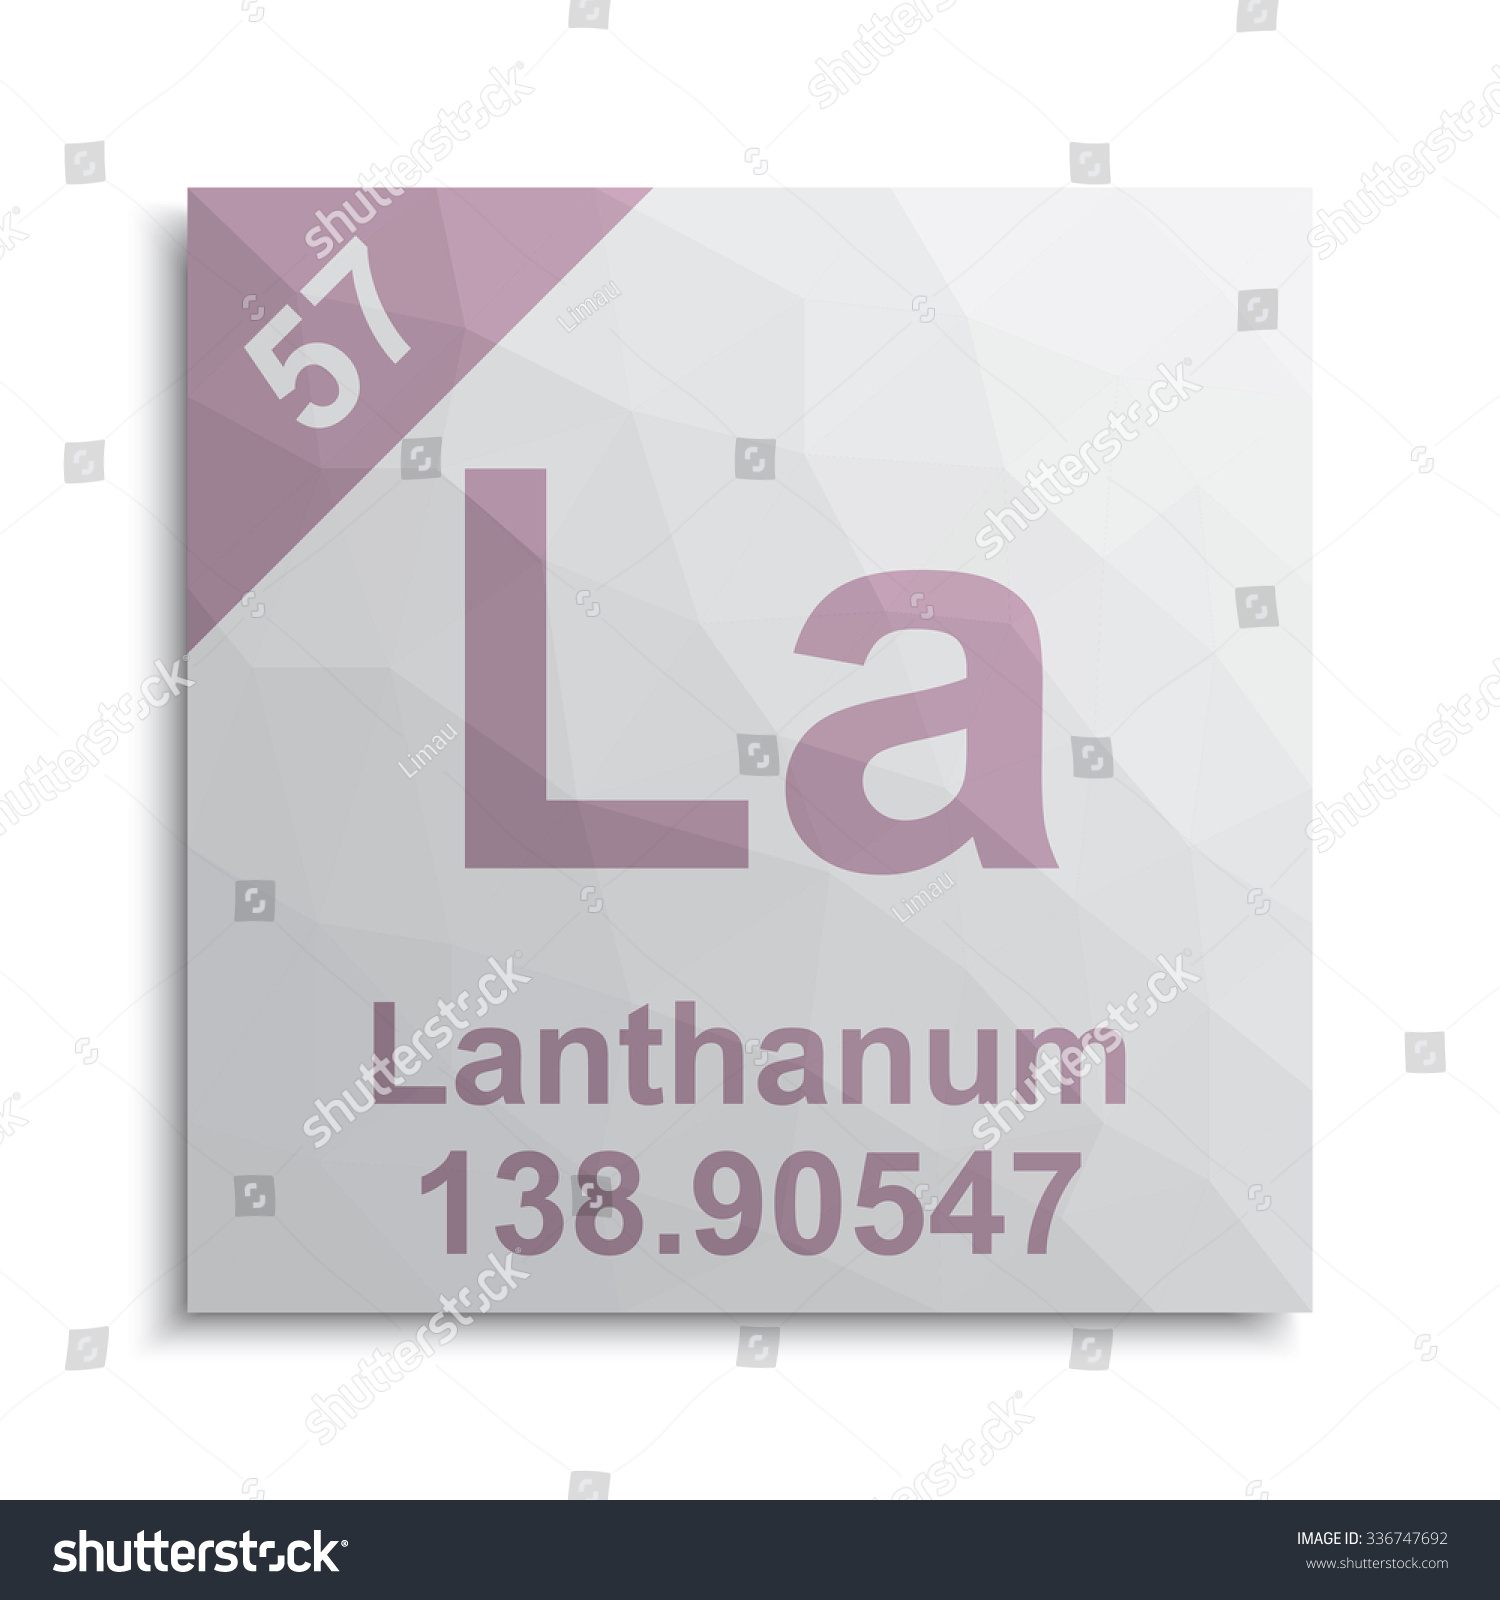 Lanthanum element periodic table stock vector 336747692 shutterstock lanthanum element periodic table gamestrikefo Gallery